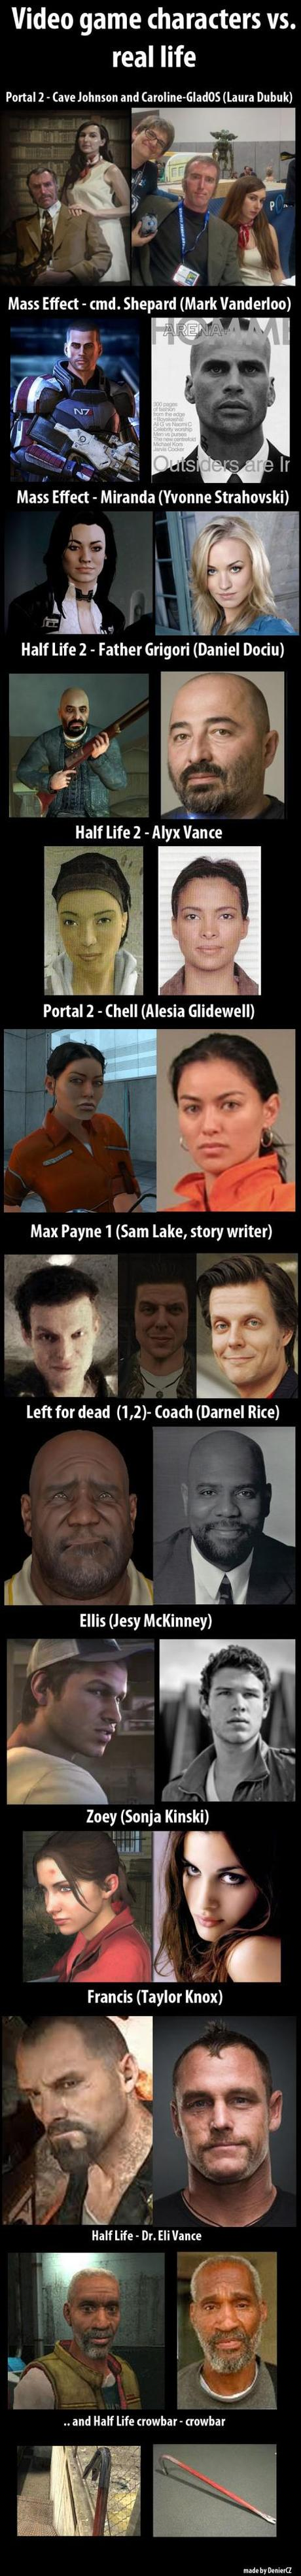 Video Game Characters and Their Real Life Face Models